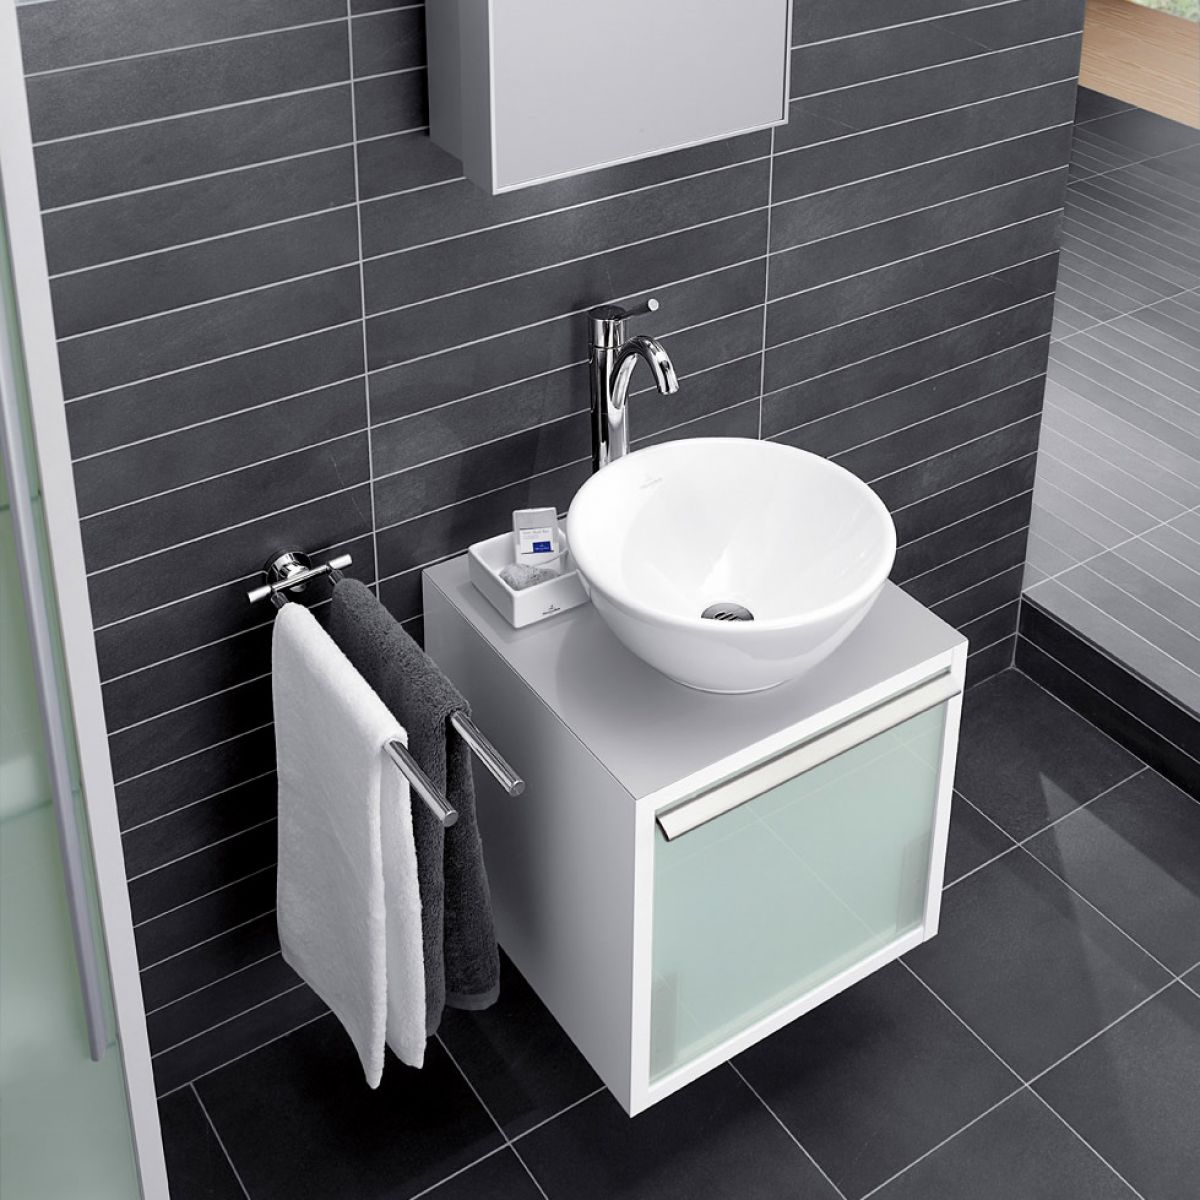 Villeroy boch bernina tiles 2410 7 5 x 60cm uk bathrooms - Villeroy y bosch ...